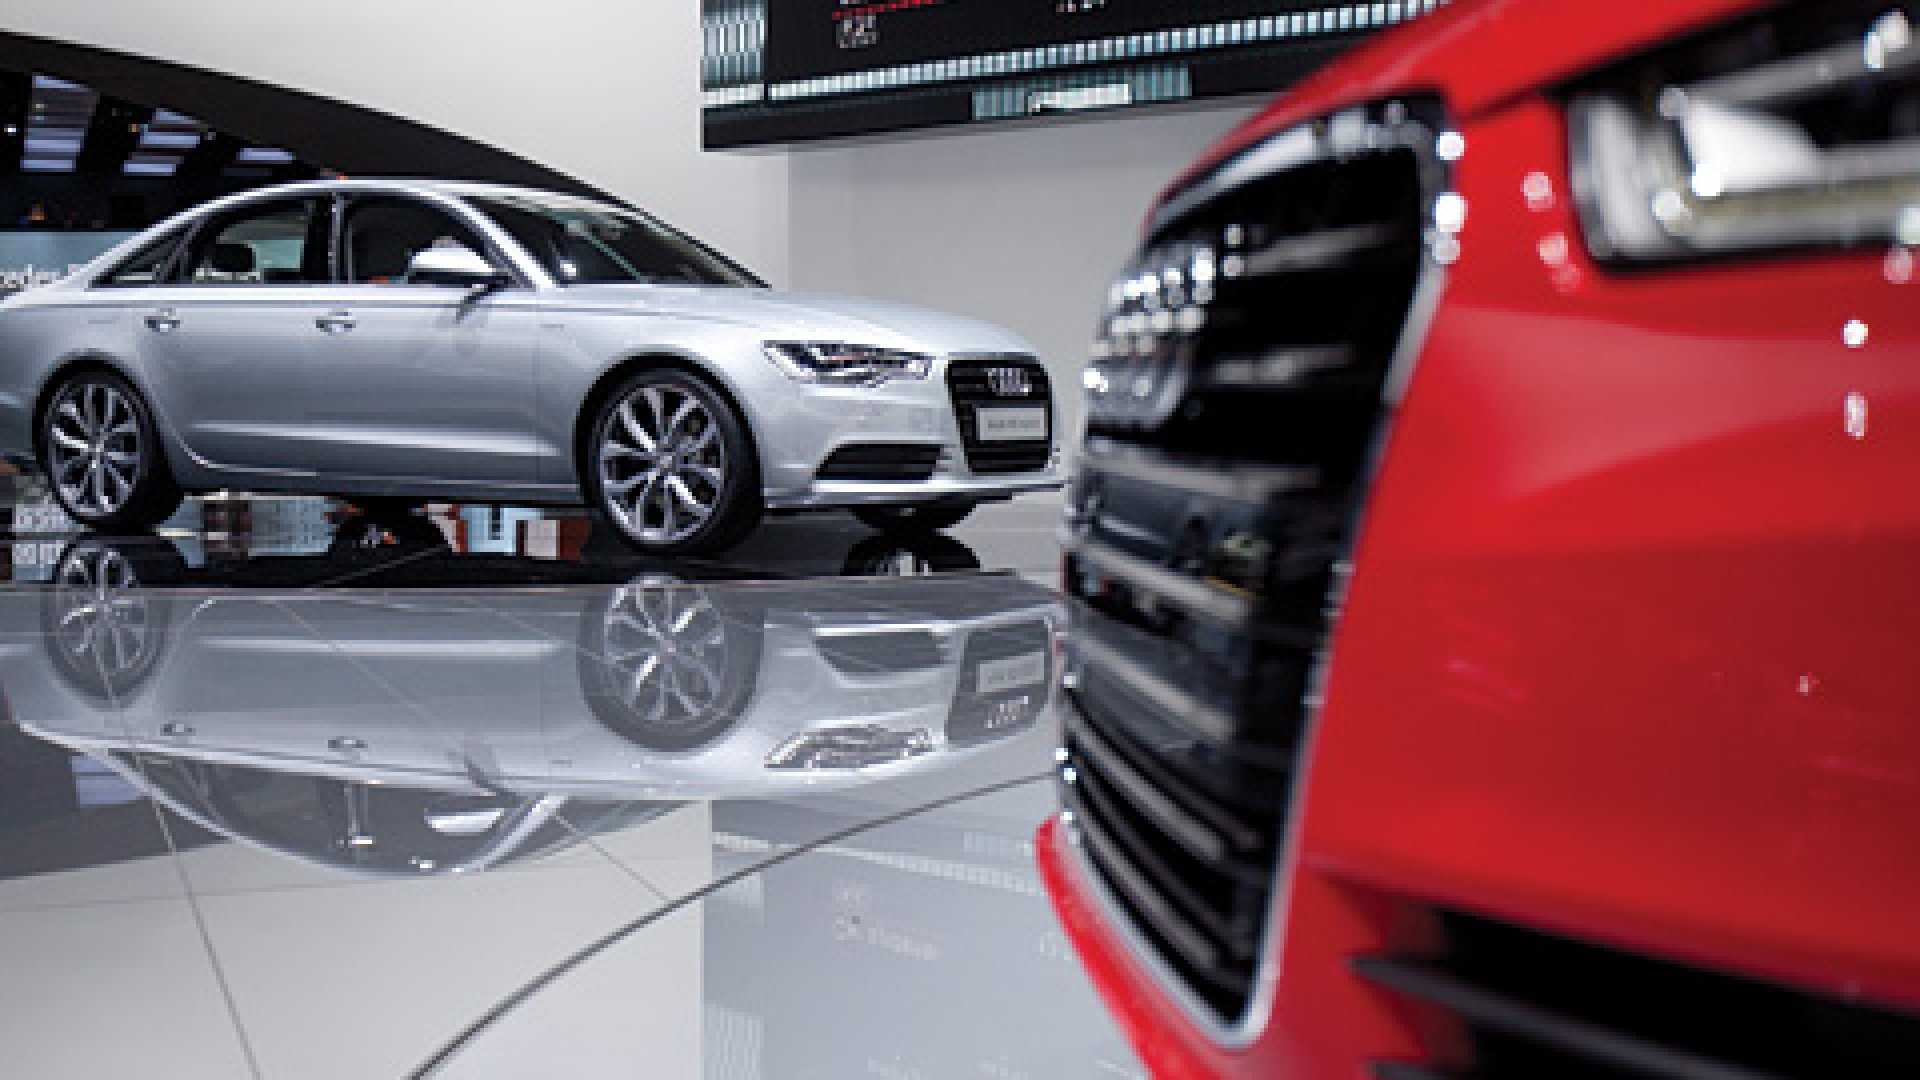 The 2012 Audi AG A6 sedan, right, and Audi A6 Hybrid sit on display at the North American International Auto Show (NAIAS) in Detroit, Michigan.